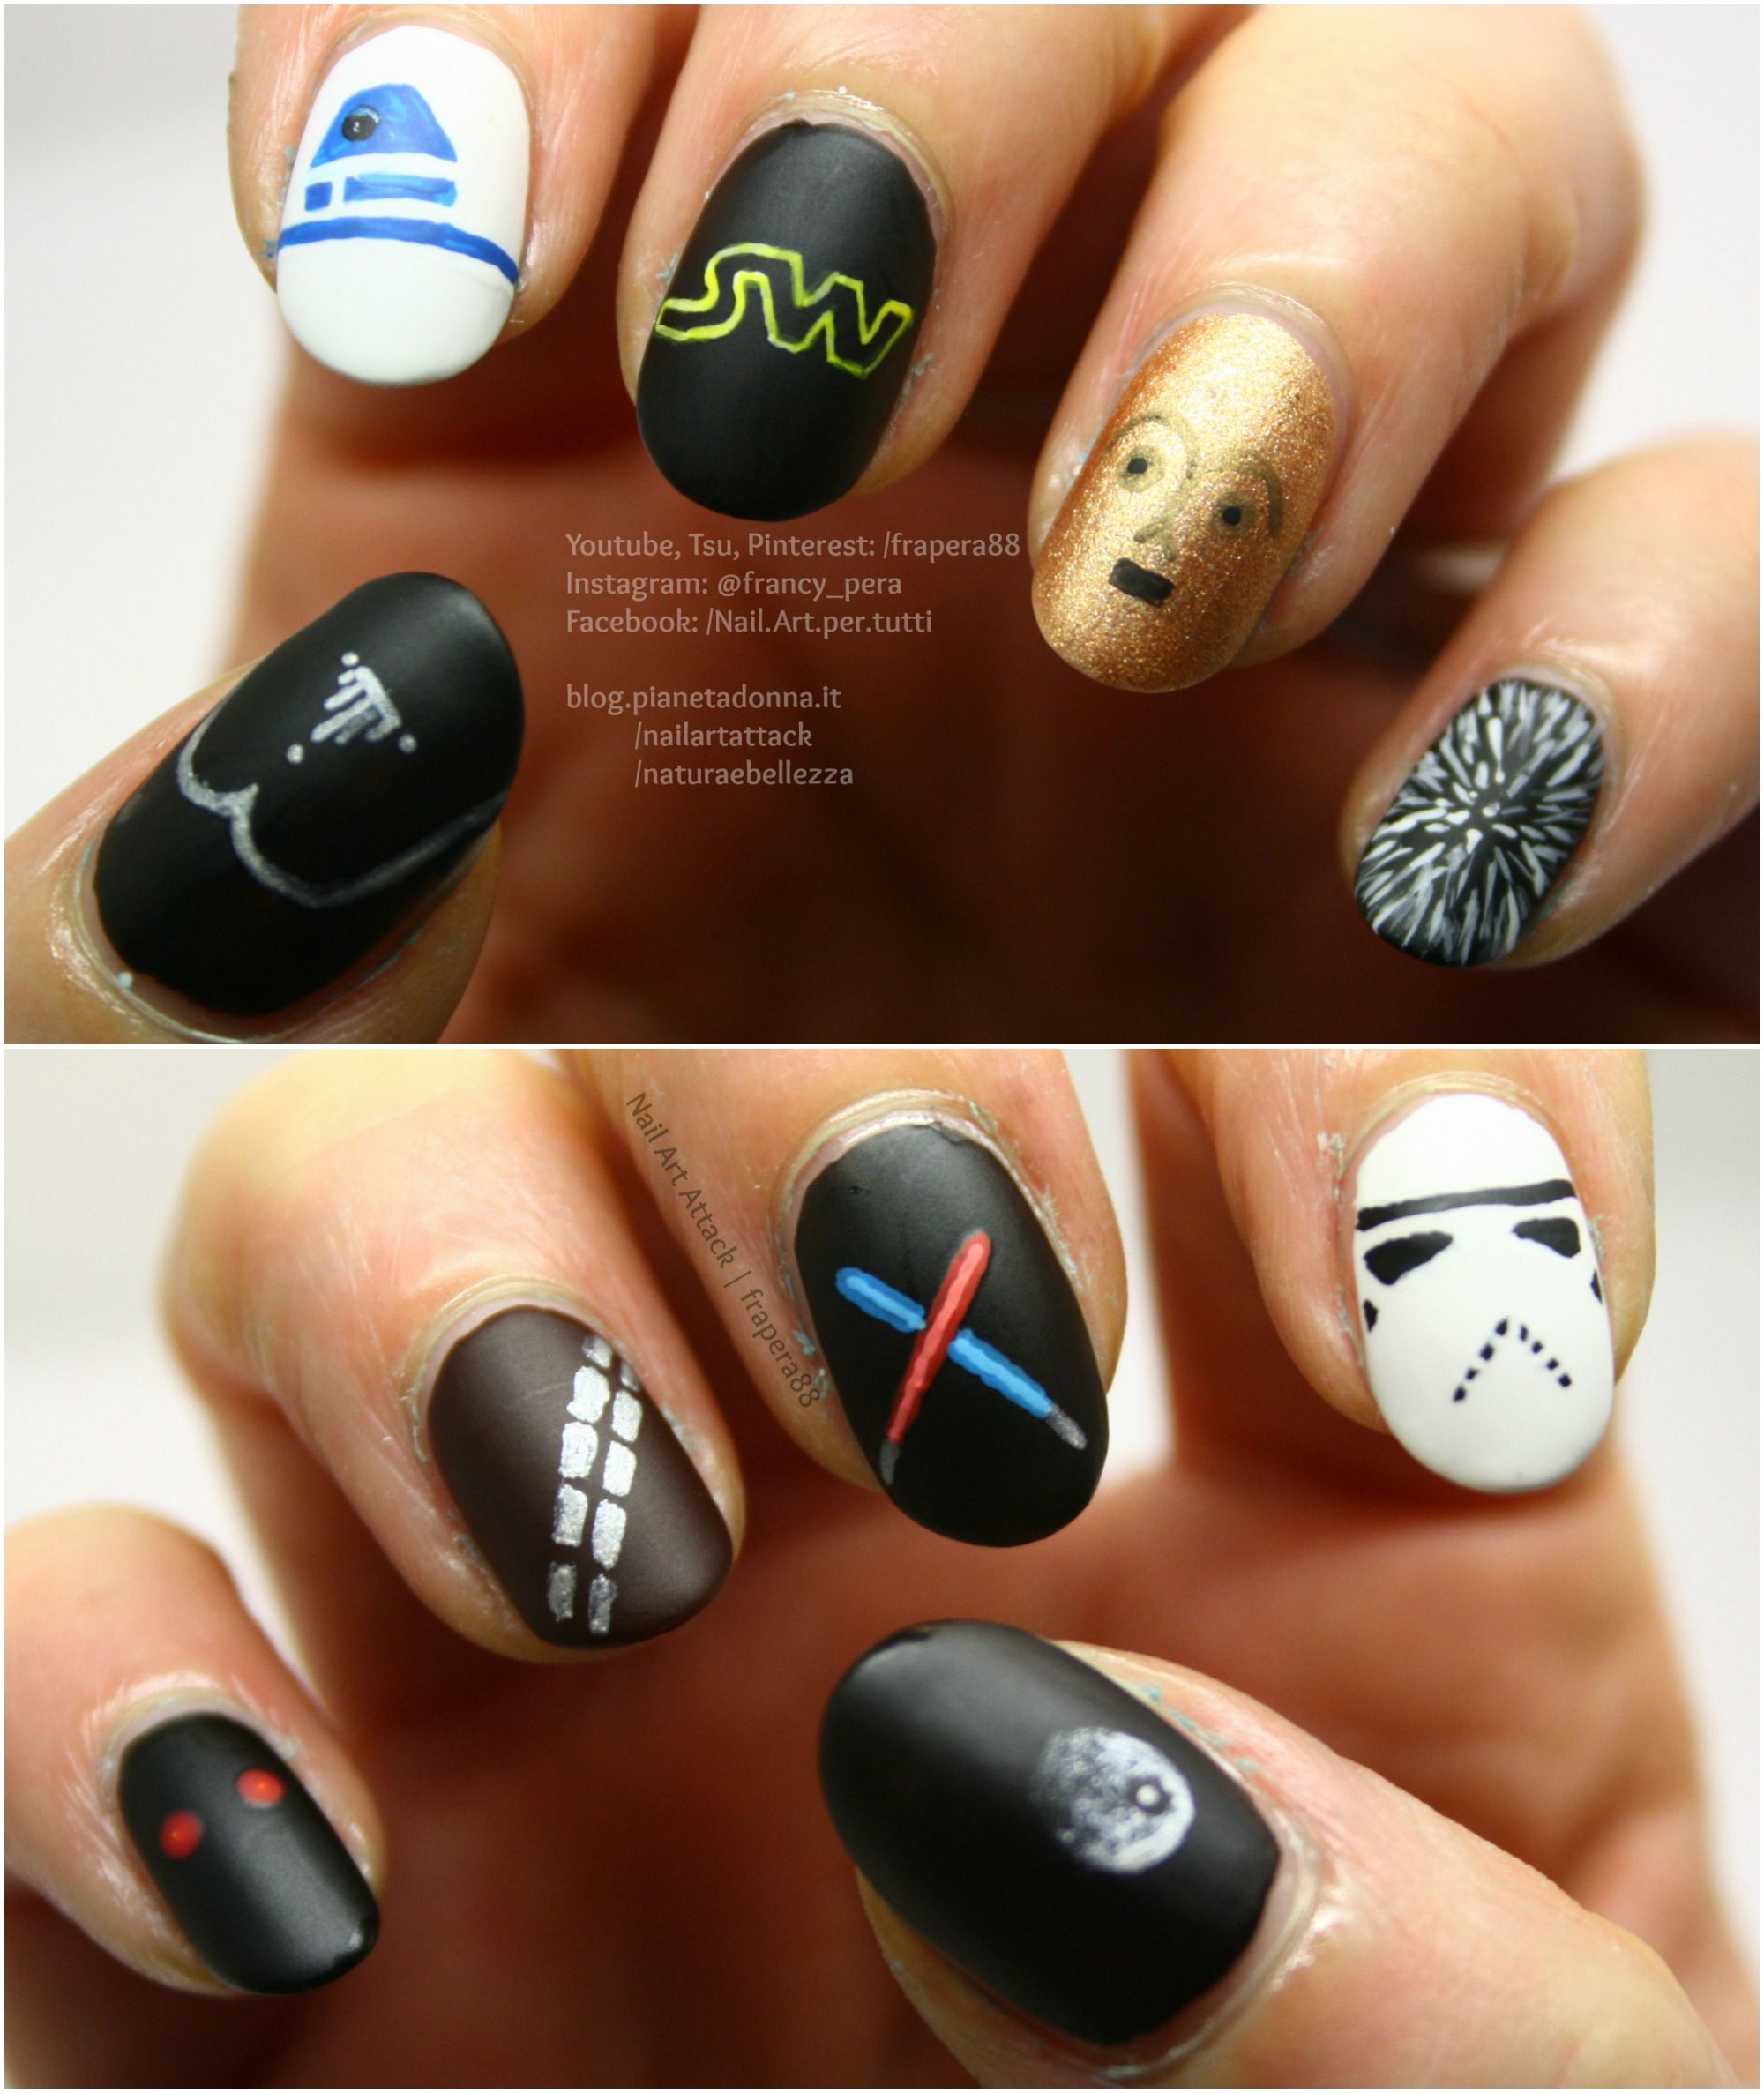 Star wars - Tutorial nail art 10 in 1: https://www.youtube.com/watch ...